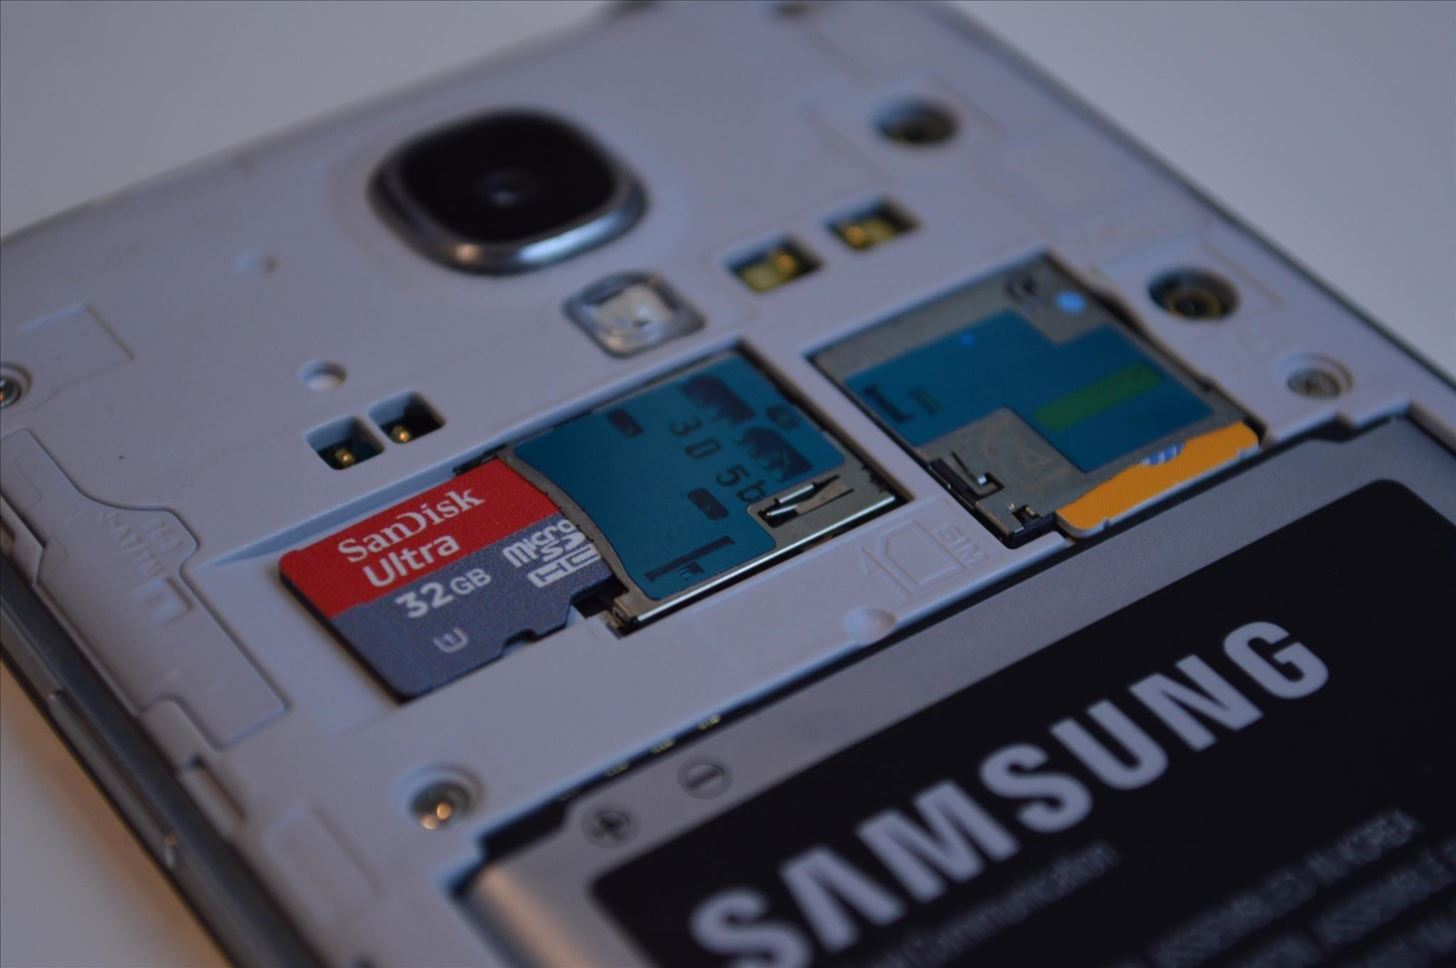 How to Bypass the SD Card Restrictions in Android 4.4 KitKat on Your Galaxy S4